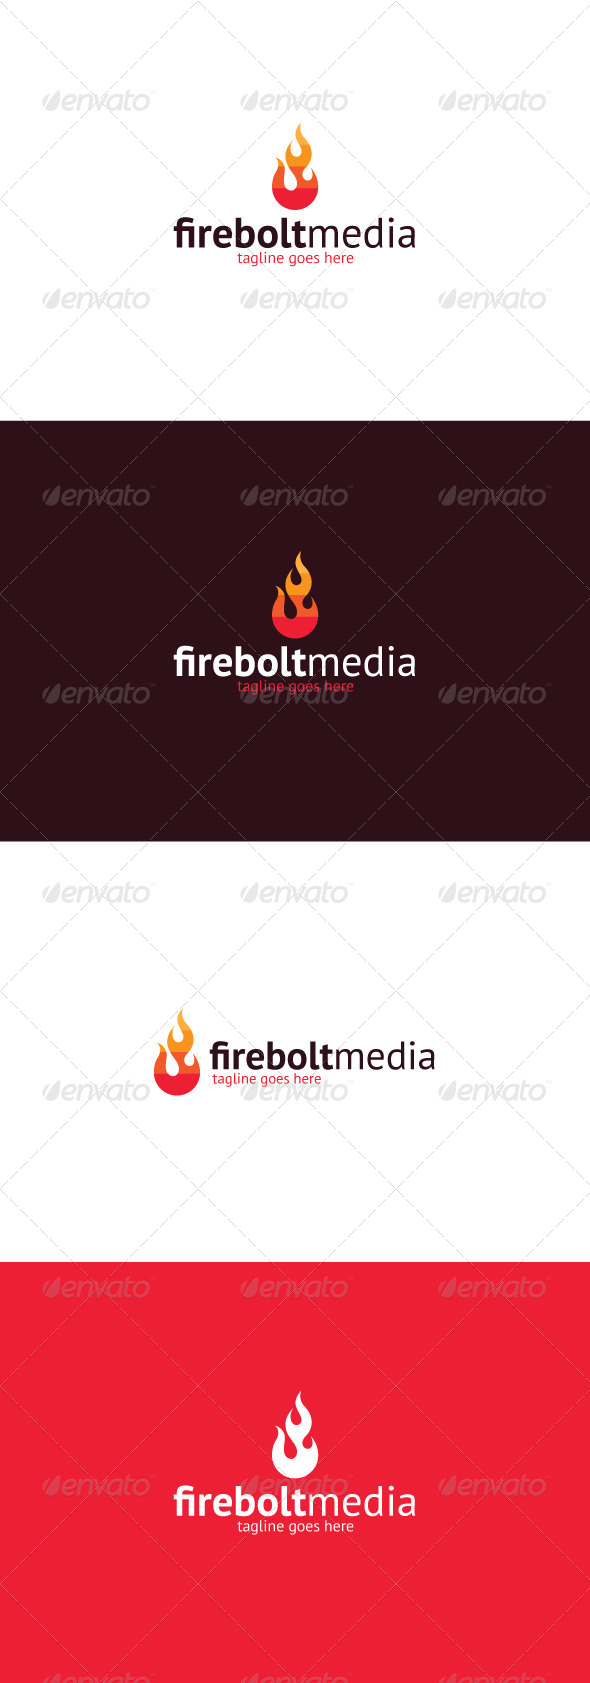 GraphicRiver Firebolt Media Logo 8295064